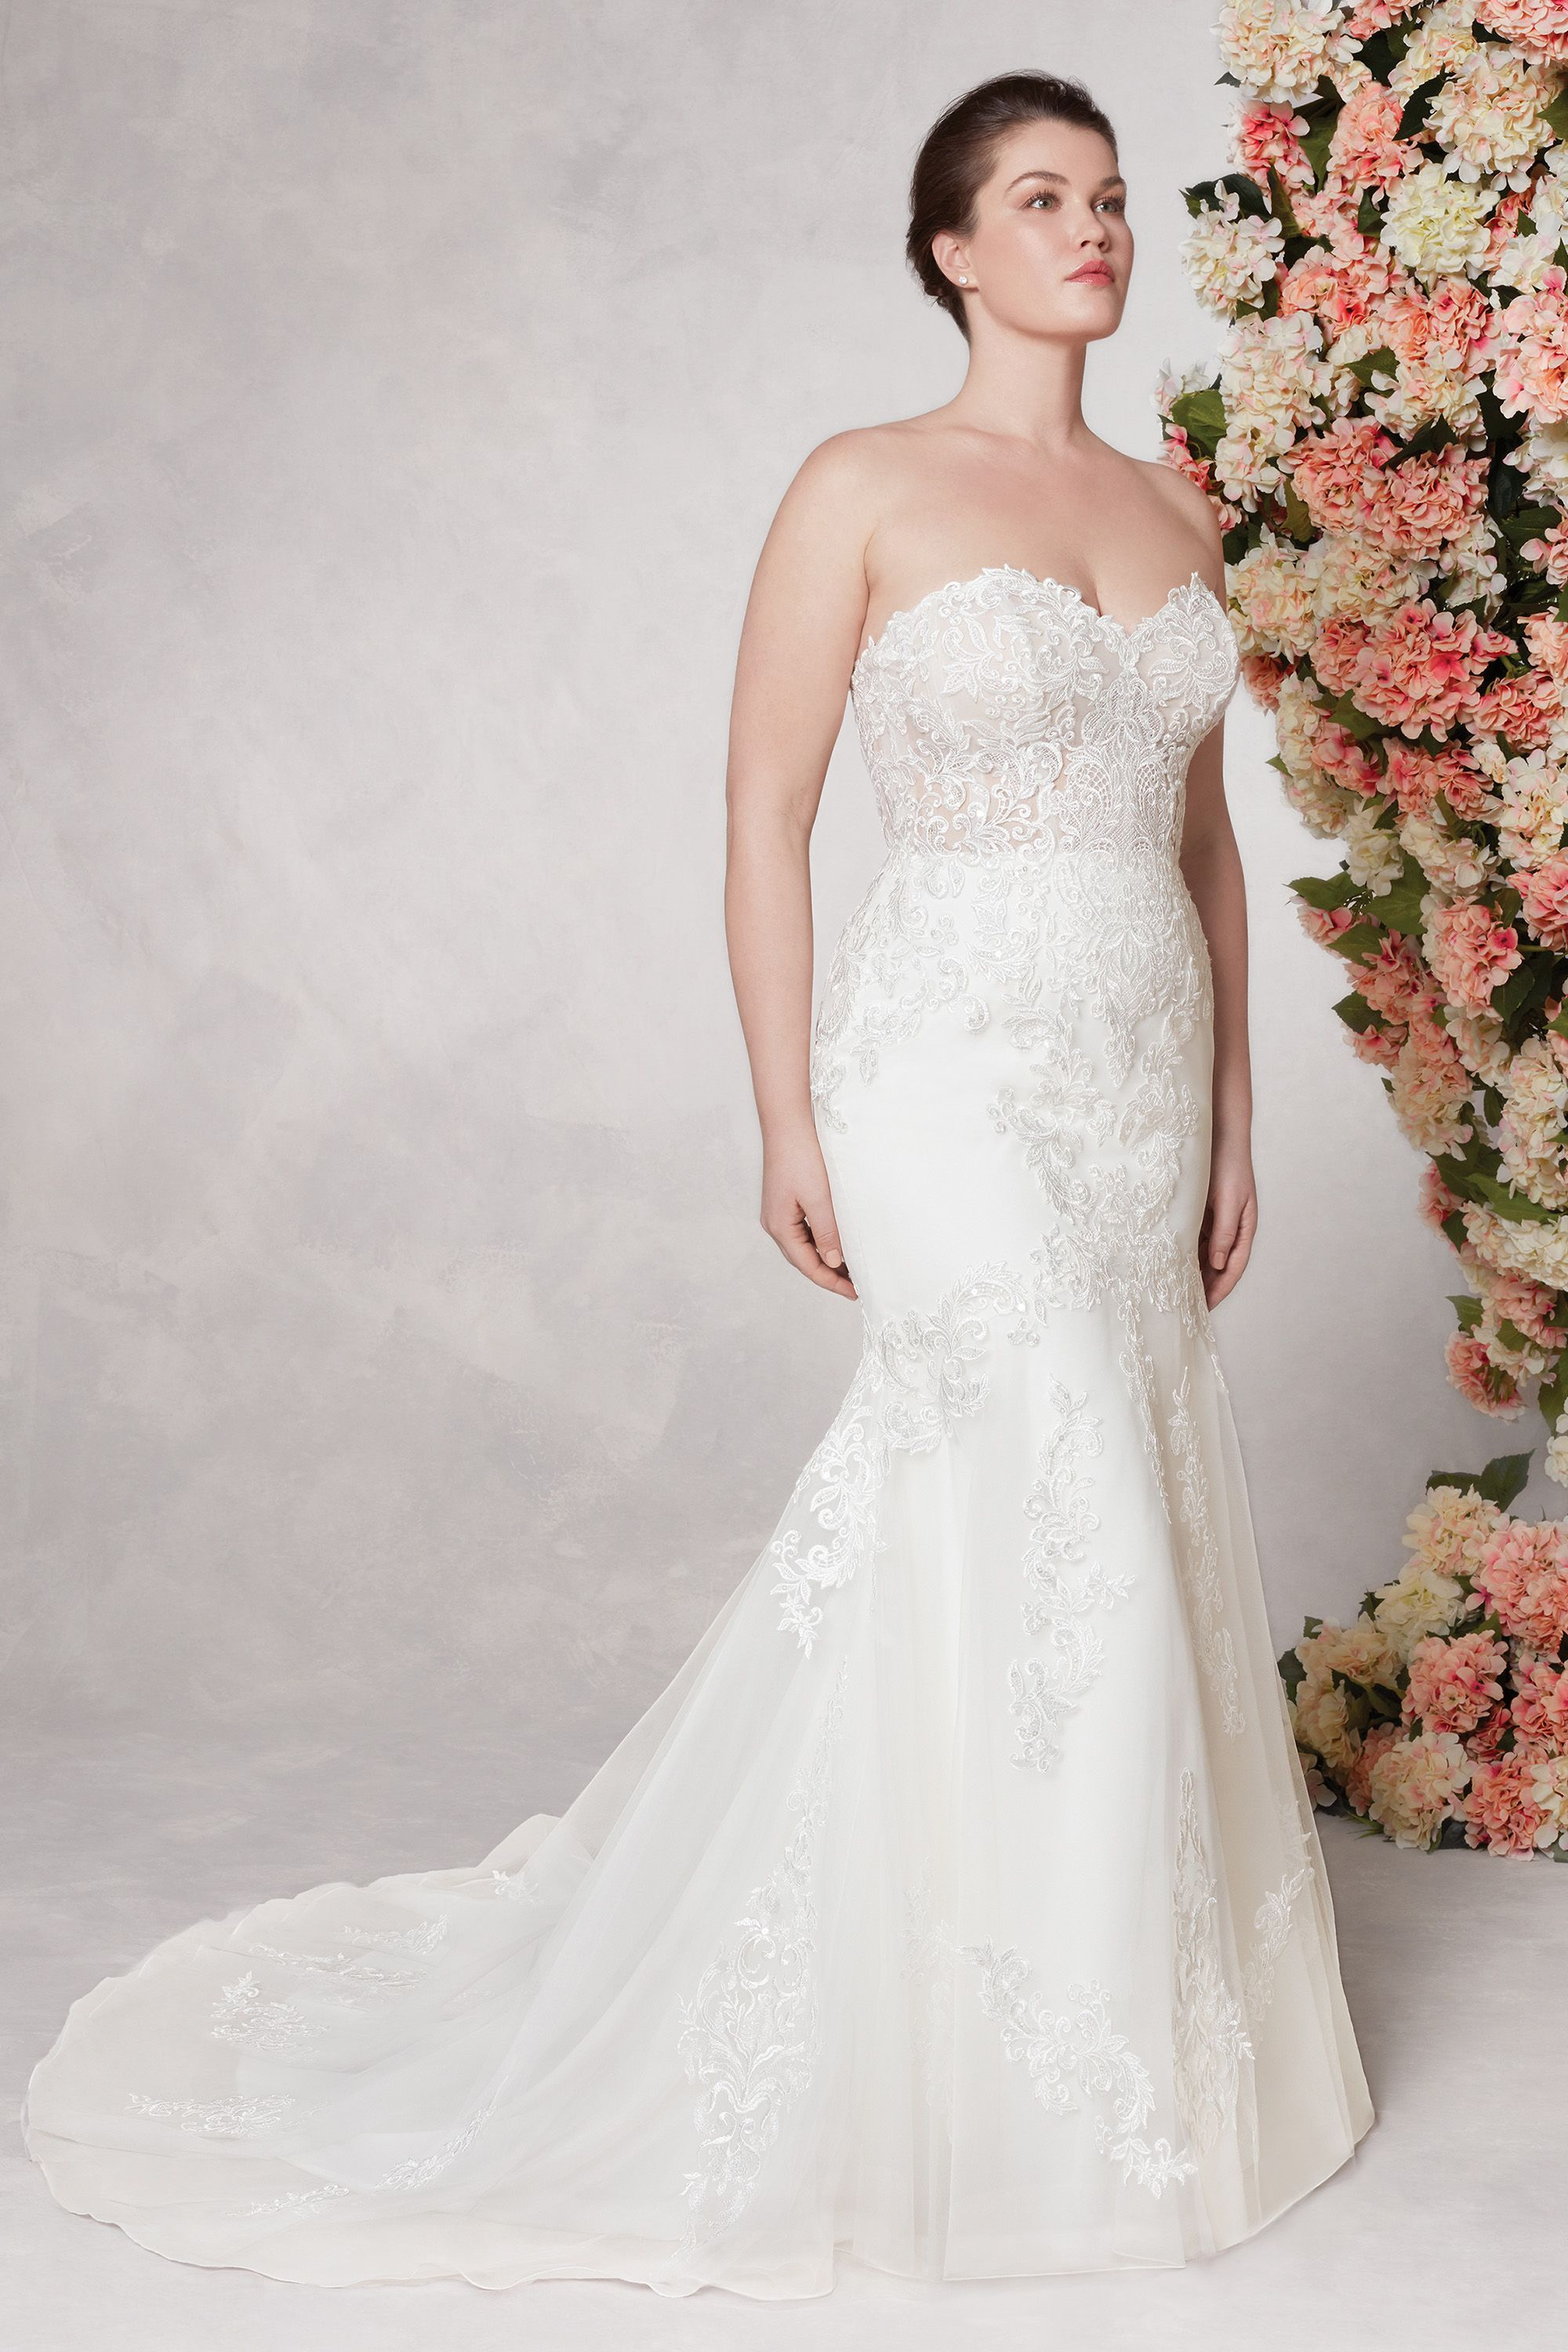 Style 44117 Strapless Mermaid Gown With Organza And Venice Lace Sincerity Bridal Fit And Flare Wedding Dress Wedding Dresses Sincerity Bridal [ 3000 x 2000 Pixel ]